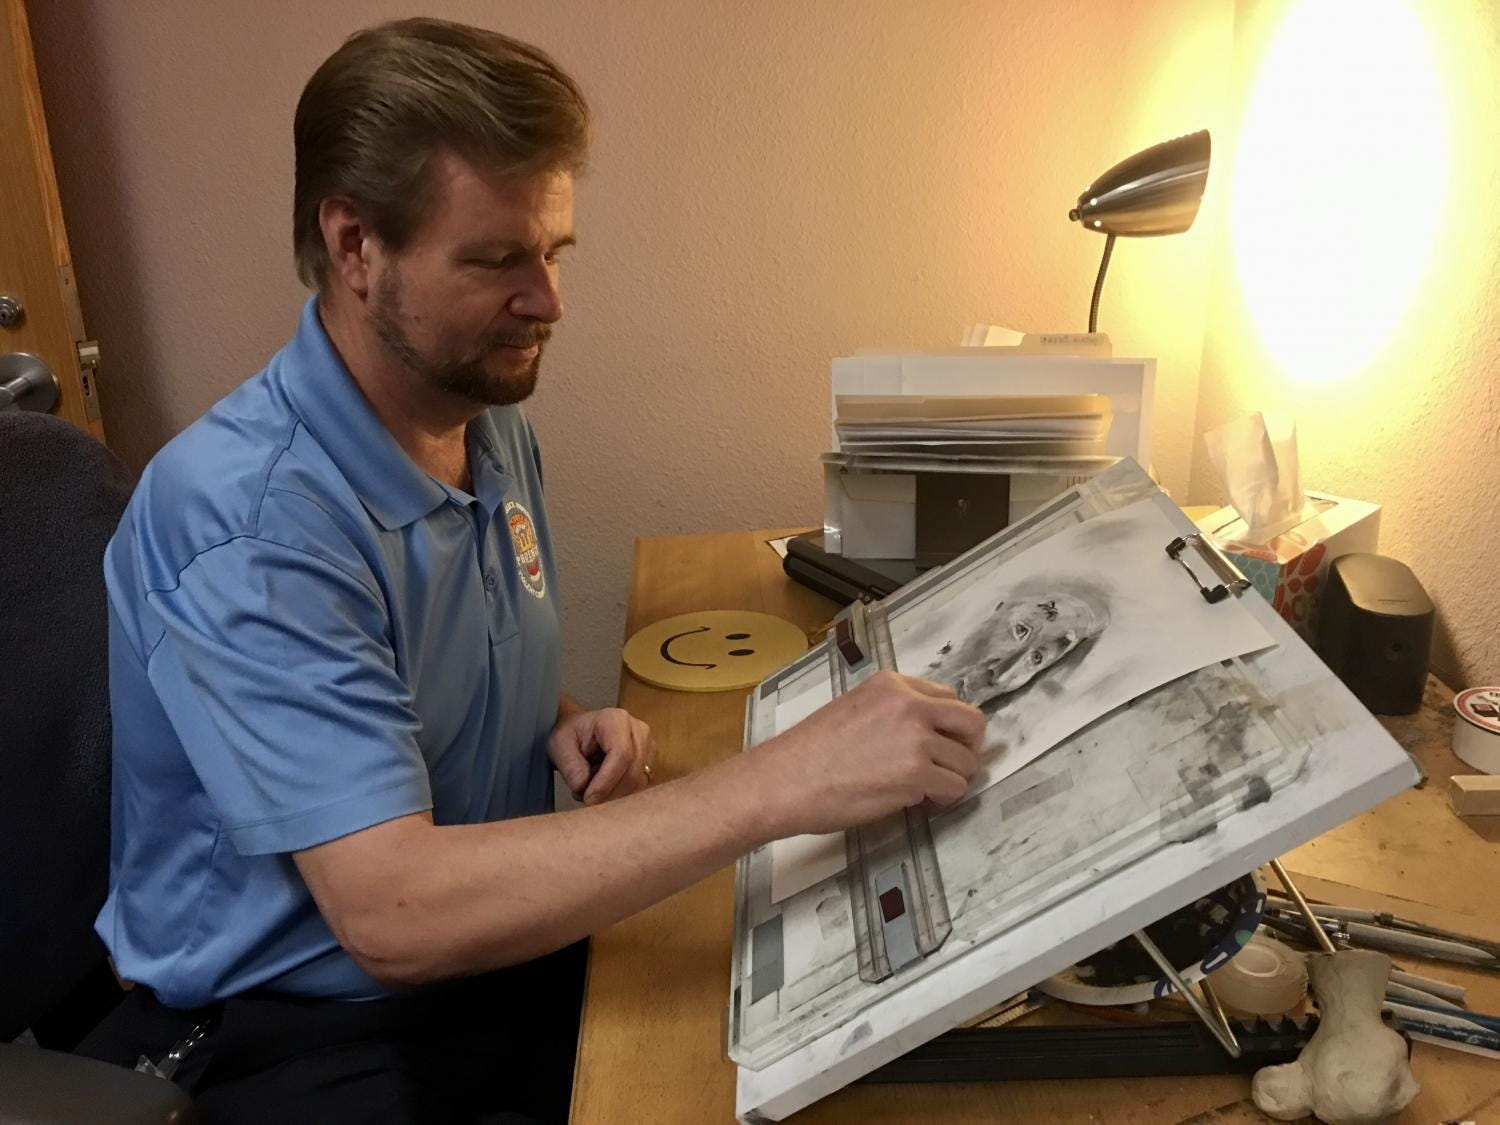 The story of forensic sketch artist Kirk Messick